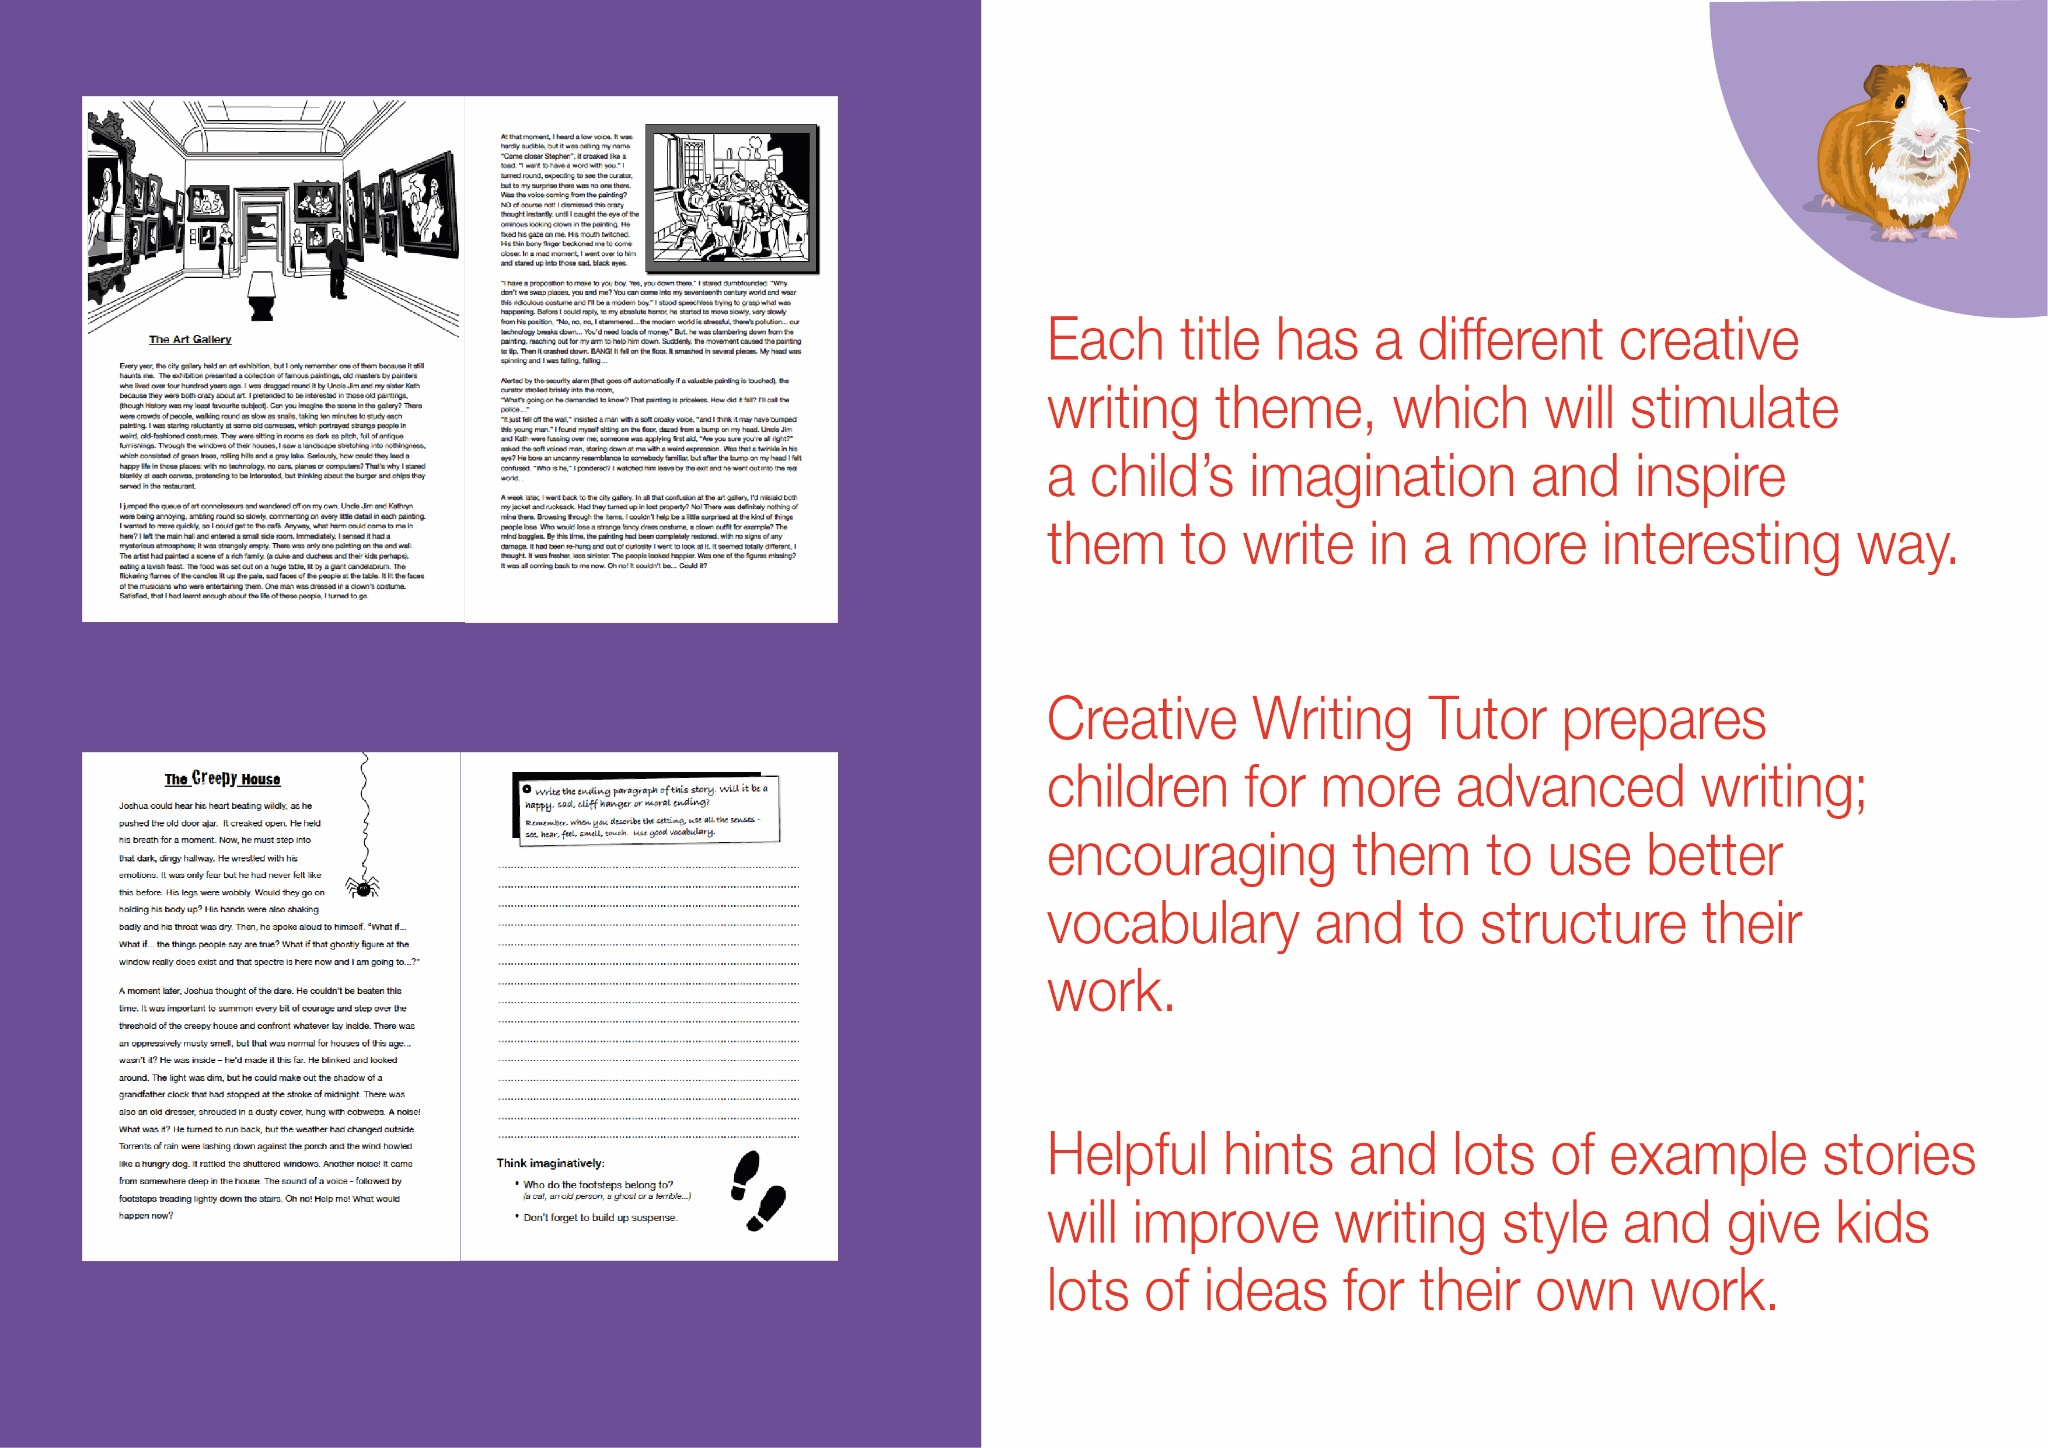 Dolphin Day Out: Brush Up On Your Writing Skills (Creative Writing Tutor) (9-13) Print Version